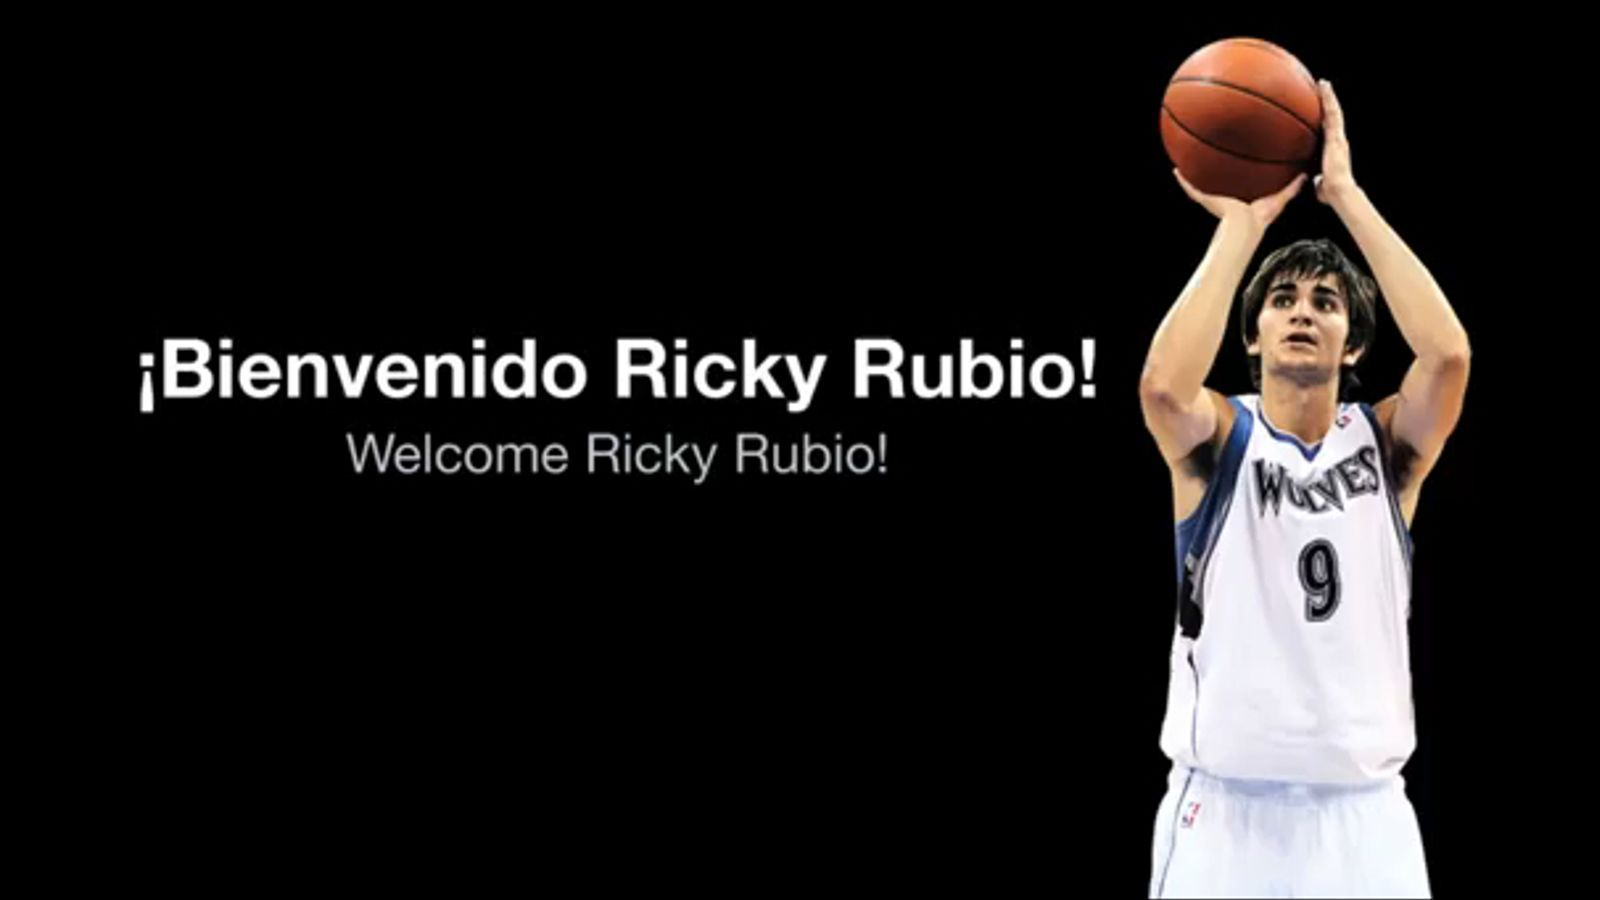 Welcome Ricky Rubio!